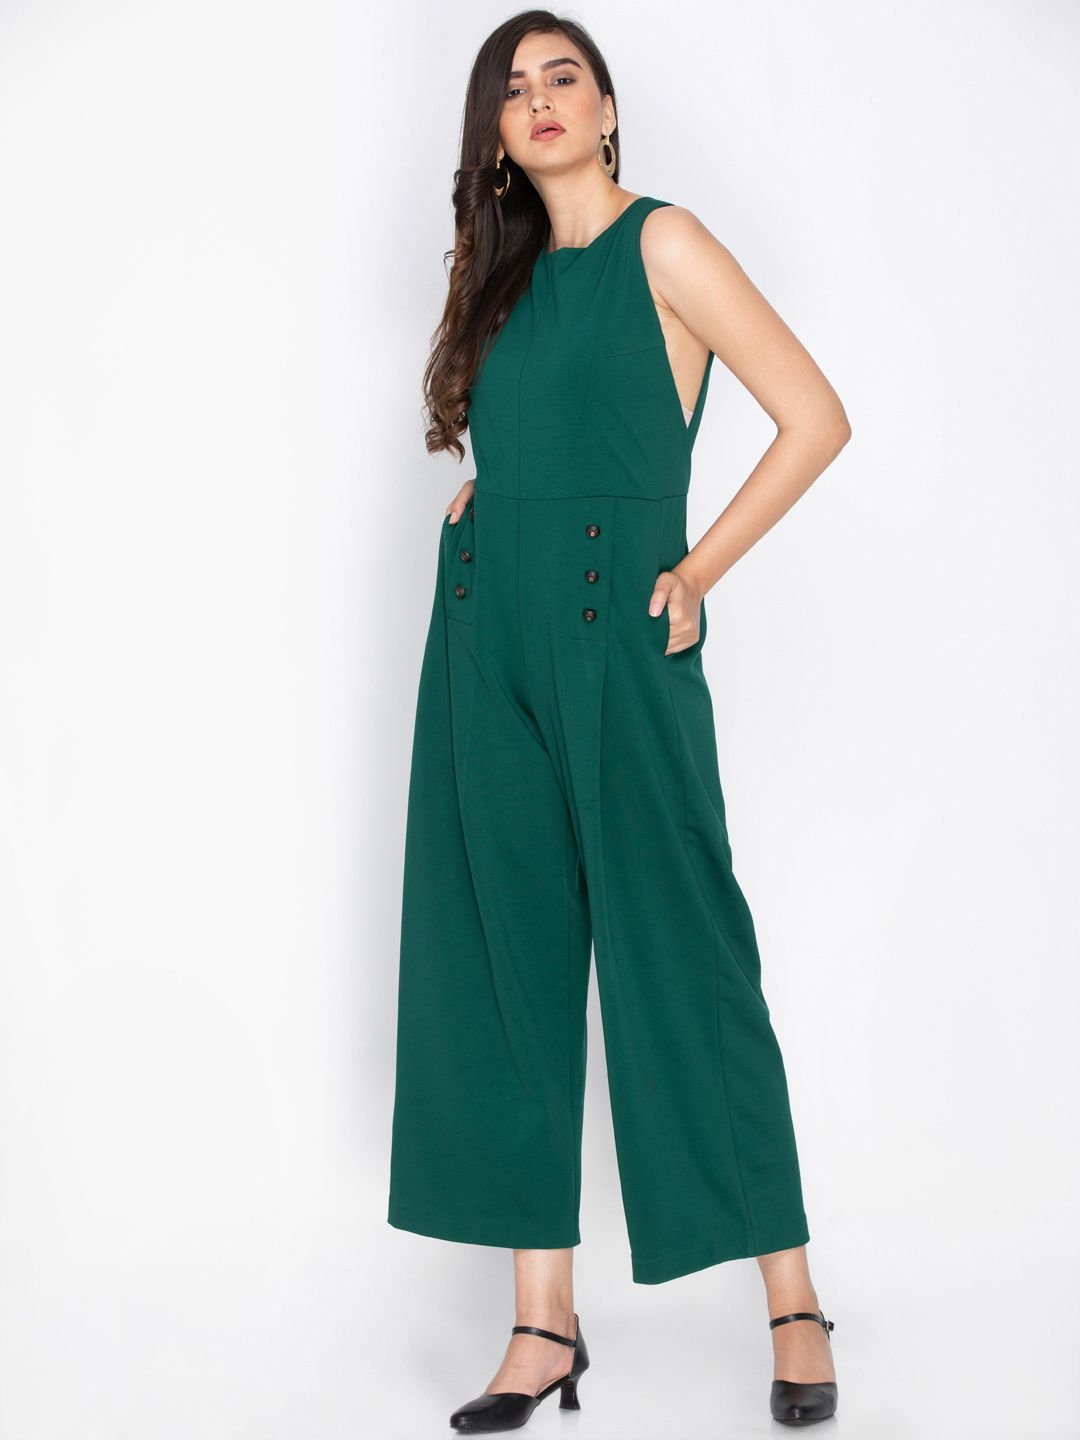 534003800a18 Lush Dreams teal sleeveless jumpsuit with invisible pockets and button  embellishments. The lush of green is such a soothing colour and our crayon  palette ...